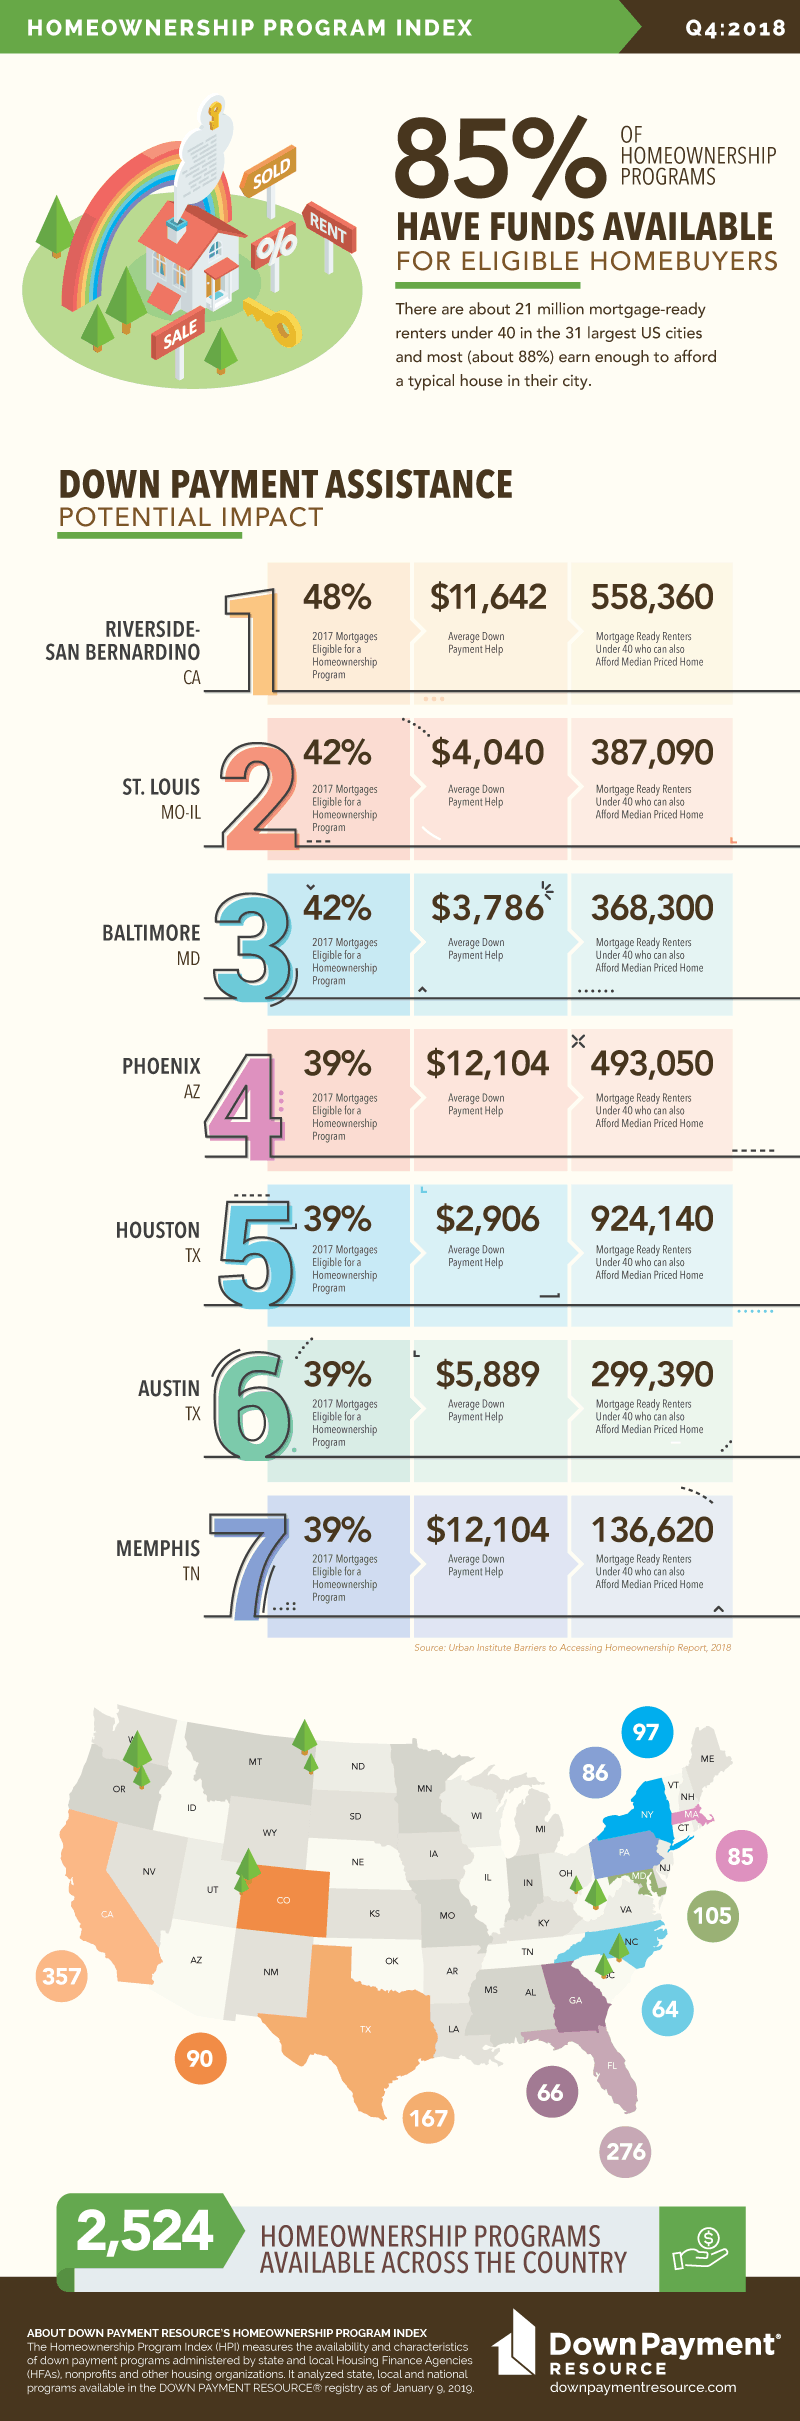 DPR_Infographic_Q4_2018 - 7 Markets with Greatest Potential of Down Payment Assistance - Home Plus Arizona DPA - 3